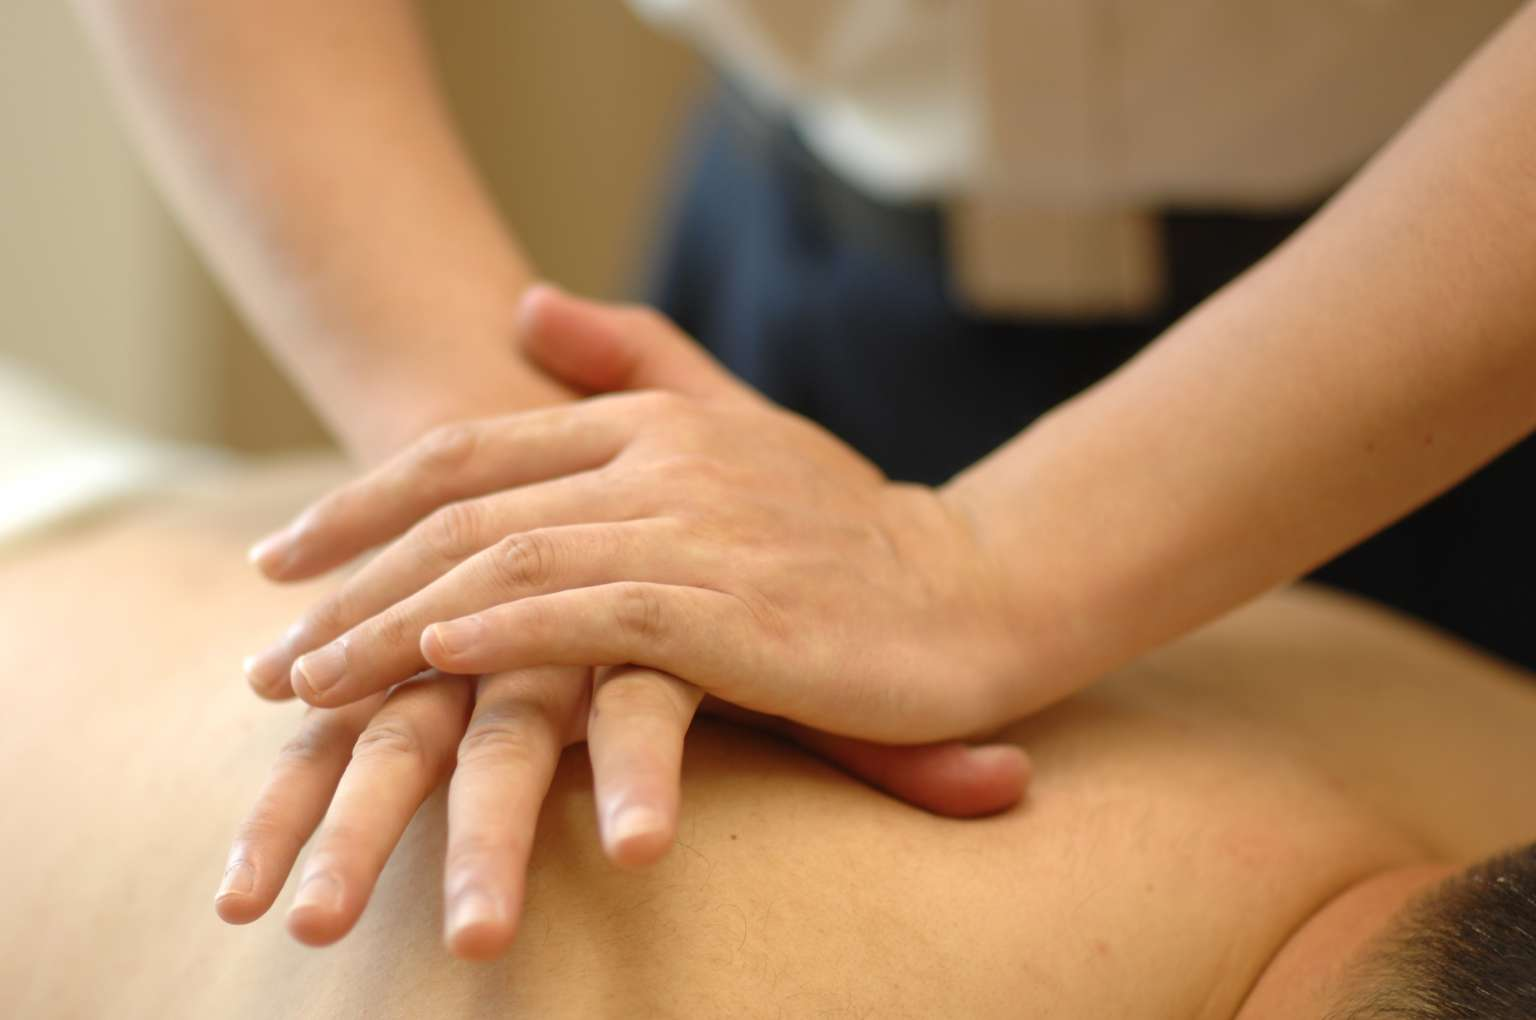 TCM Tui Na – The Art of TCM Massage